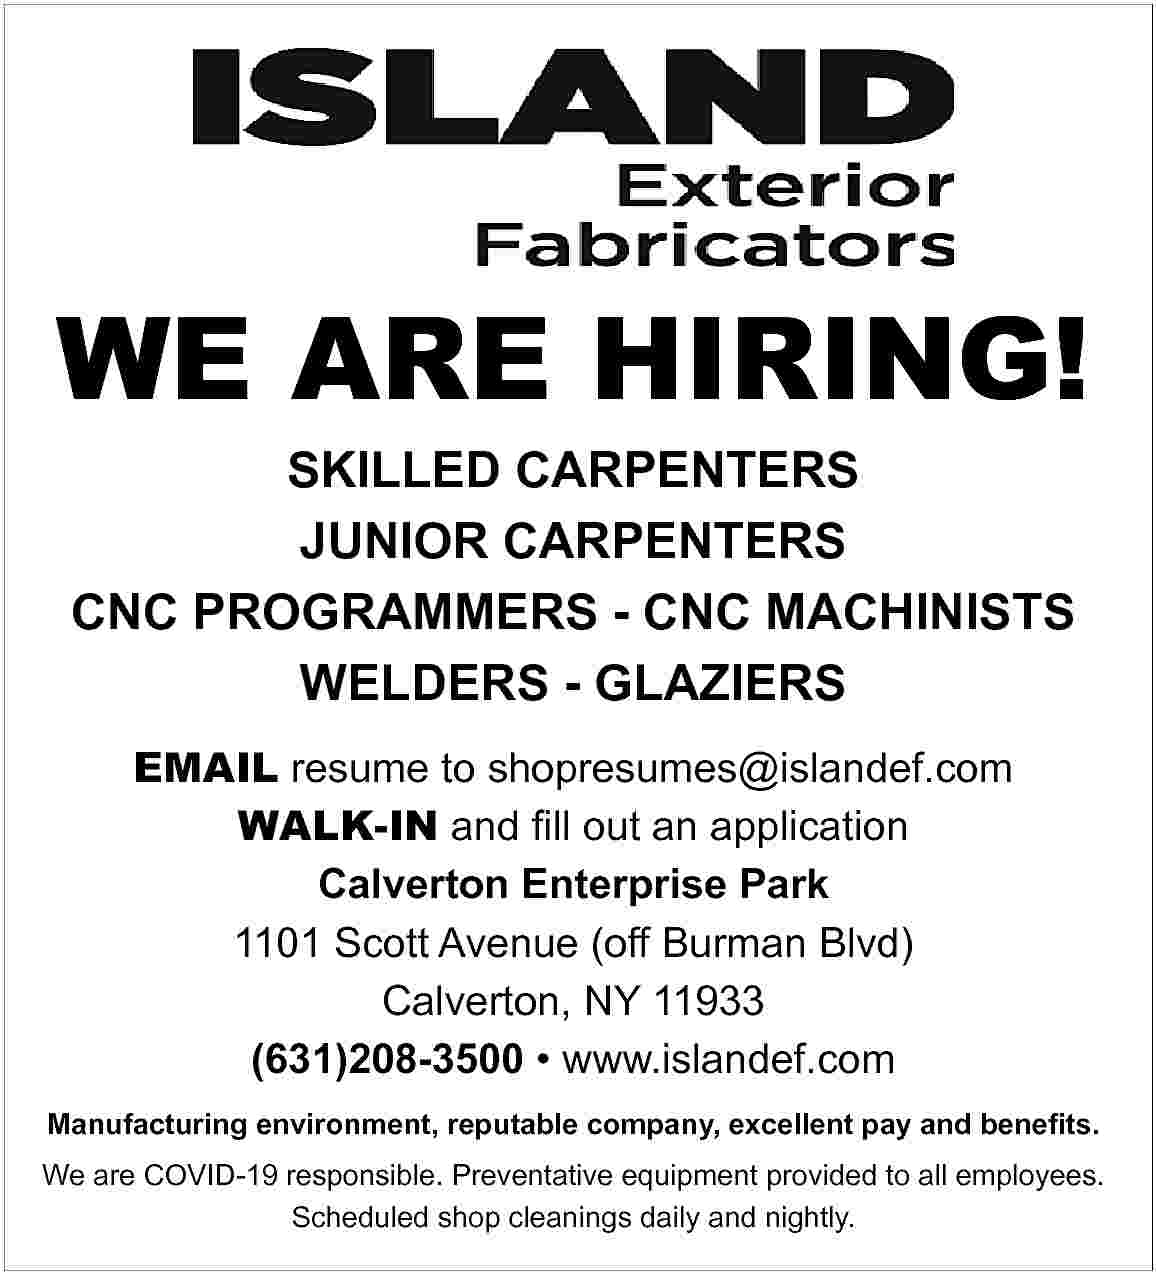 WE ARE HIRING! SKILLED WE ARE HIRING! SKILLED CARPENTERS JUNIOR CARPENTERS CNC PROGRAMMERS - CNC MACHINISTS WELDERS - GLAZIERS EMAIL resume to shopresumes@islandef.com WALK-IN and fill out an application Calverton Enterprise Park 1101 Scott Avenue (off Burman Blvd) Calverton, NY 11933 (631)208-3500     www.islandef.com Manufacturing environment, reputable company, excellent pay and benefits. We are COVID-19 responsible. Preventative equipment provided to all employees. Scheduled shop cleanings daily and nightly.